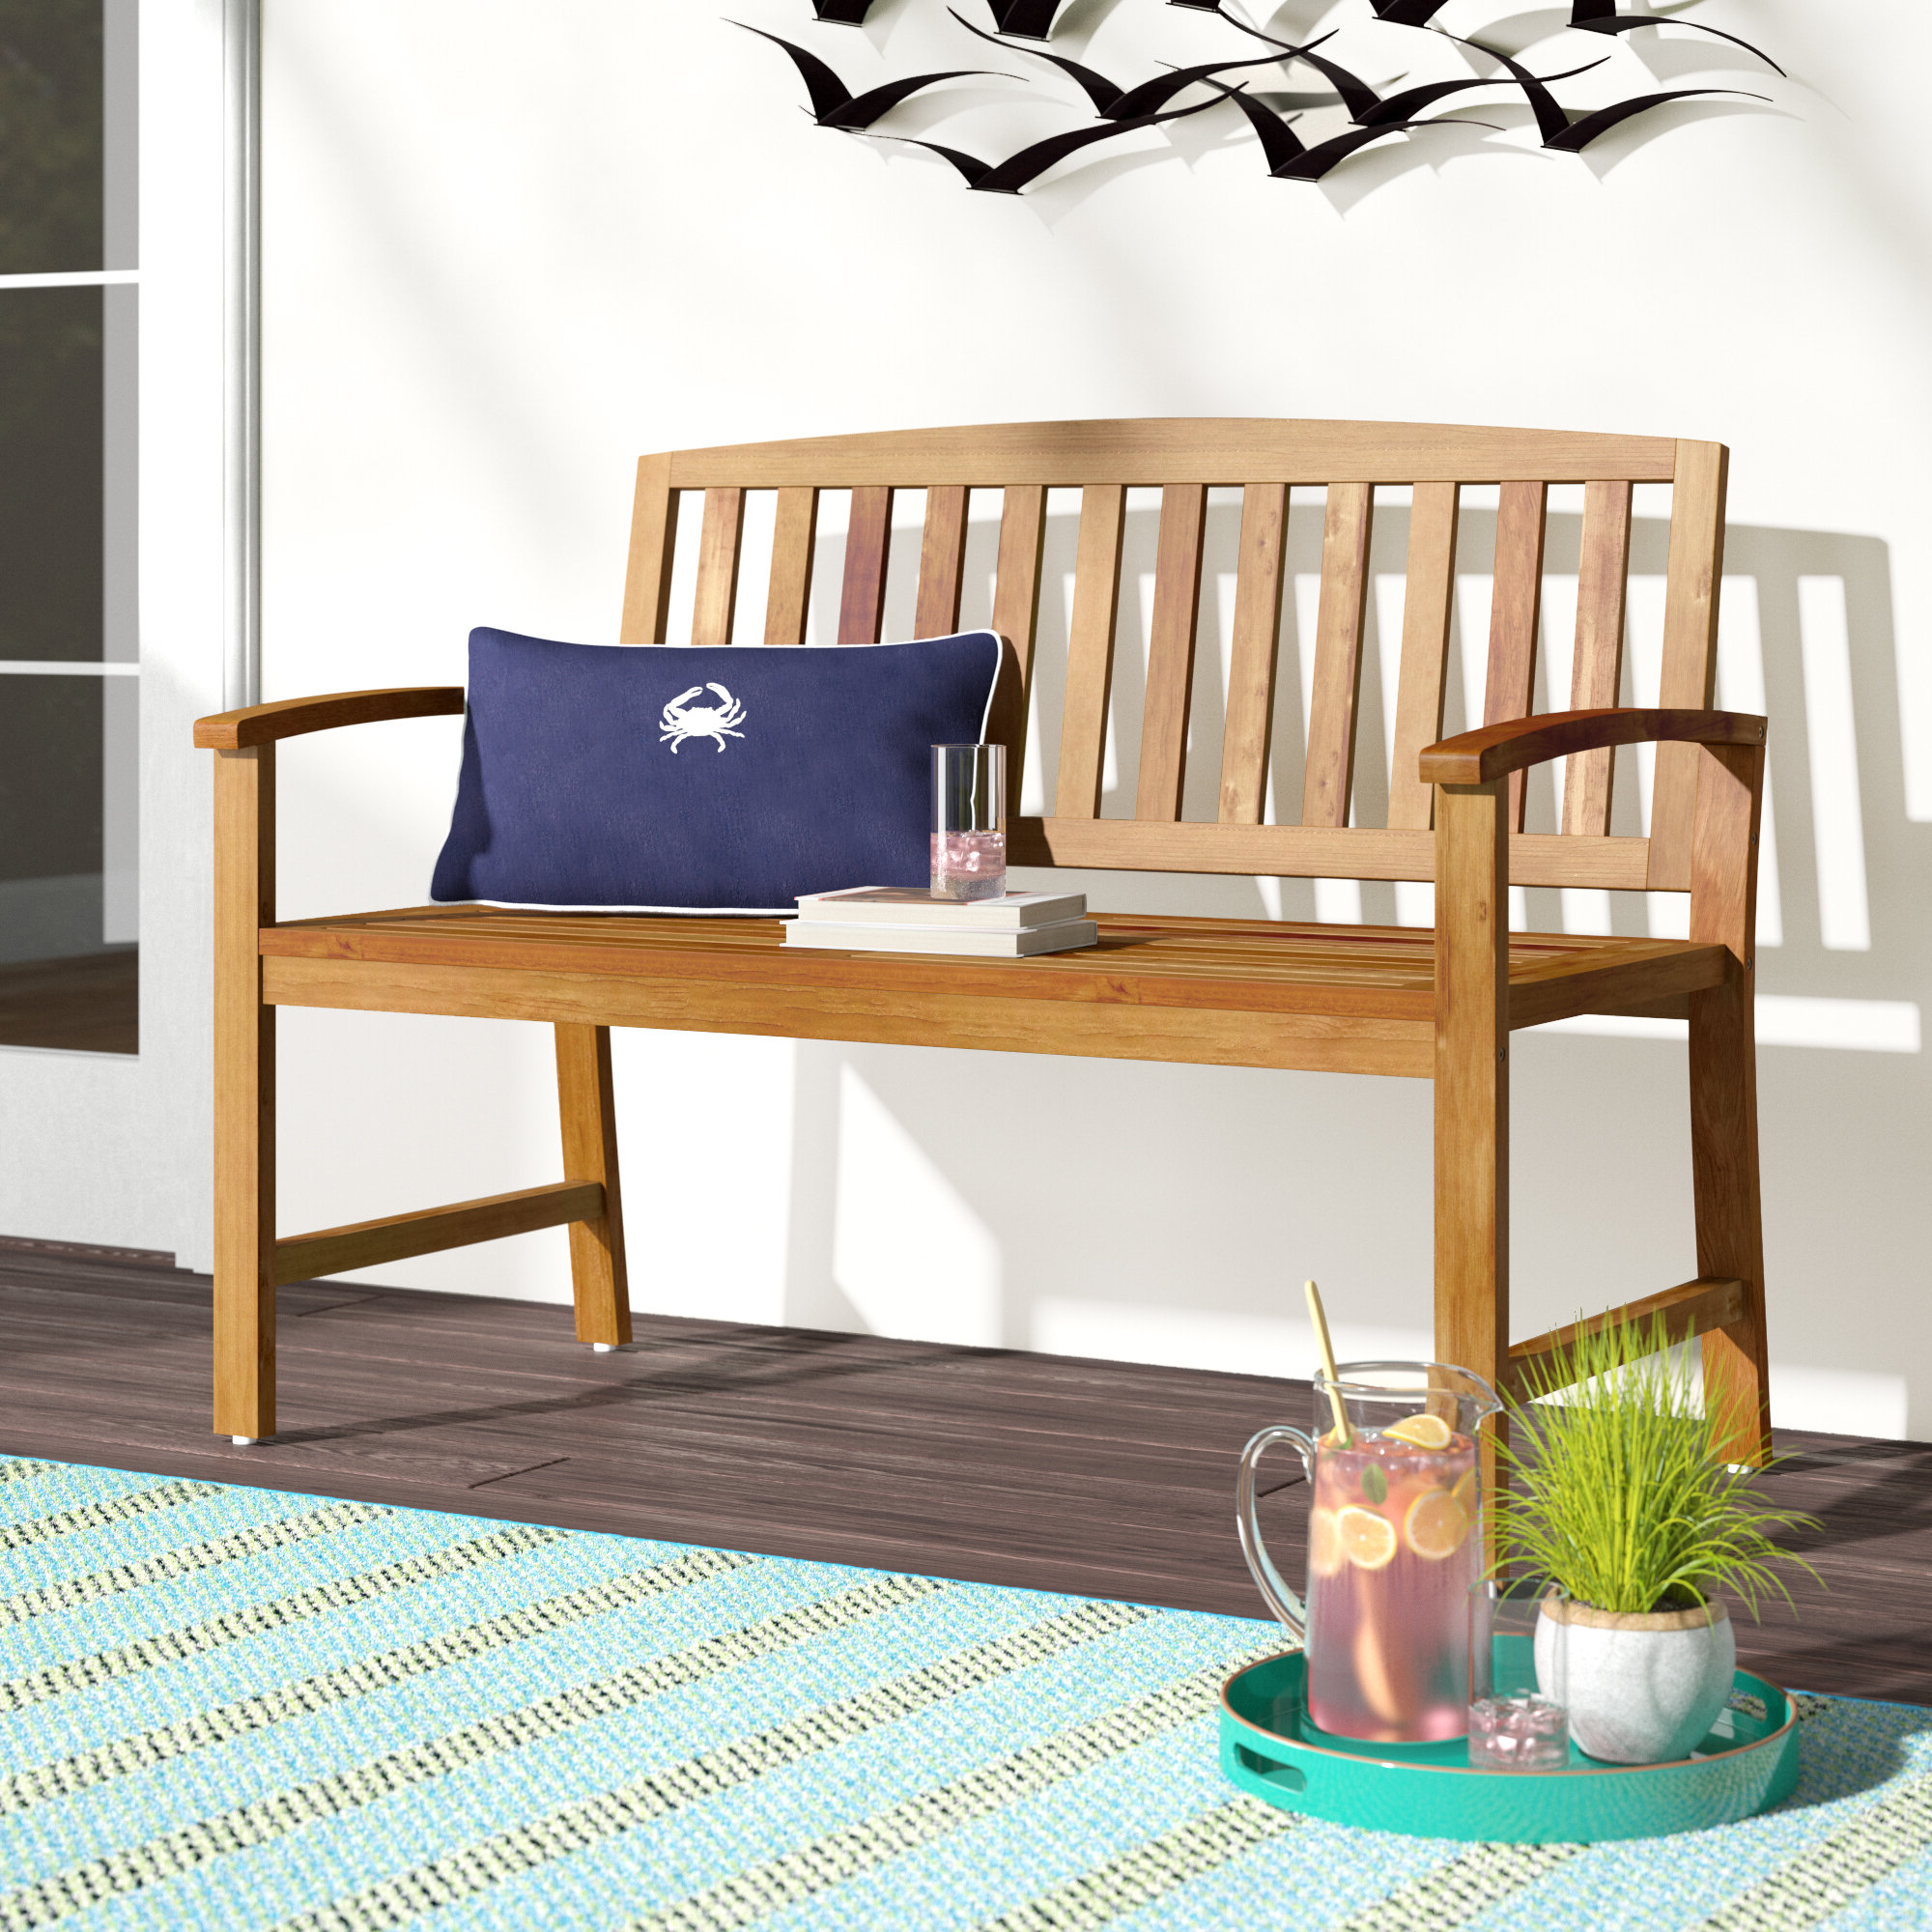 Krystal Ergonomic Metal Garden Benches Regarding Well Liked Outdoor Benches You'll Love In  (View 15 of 30)